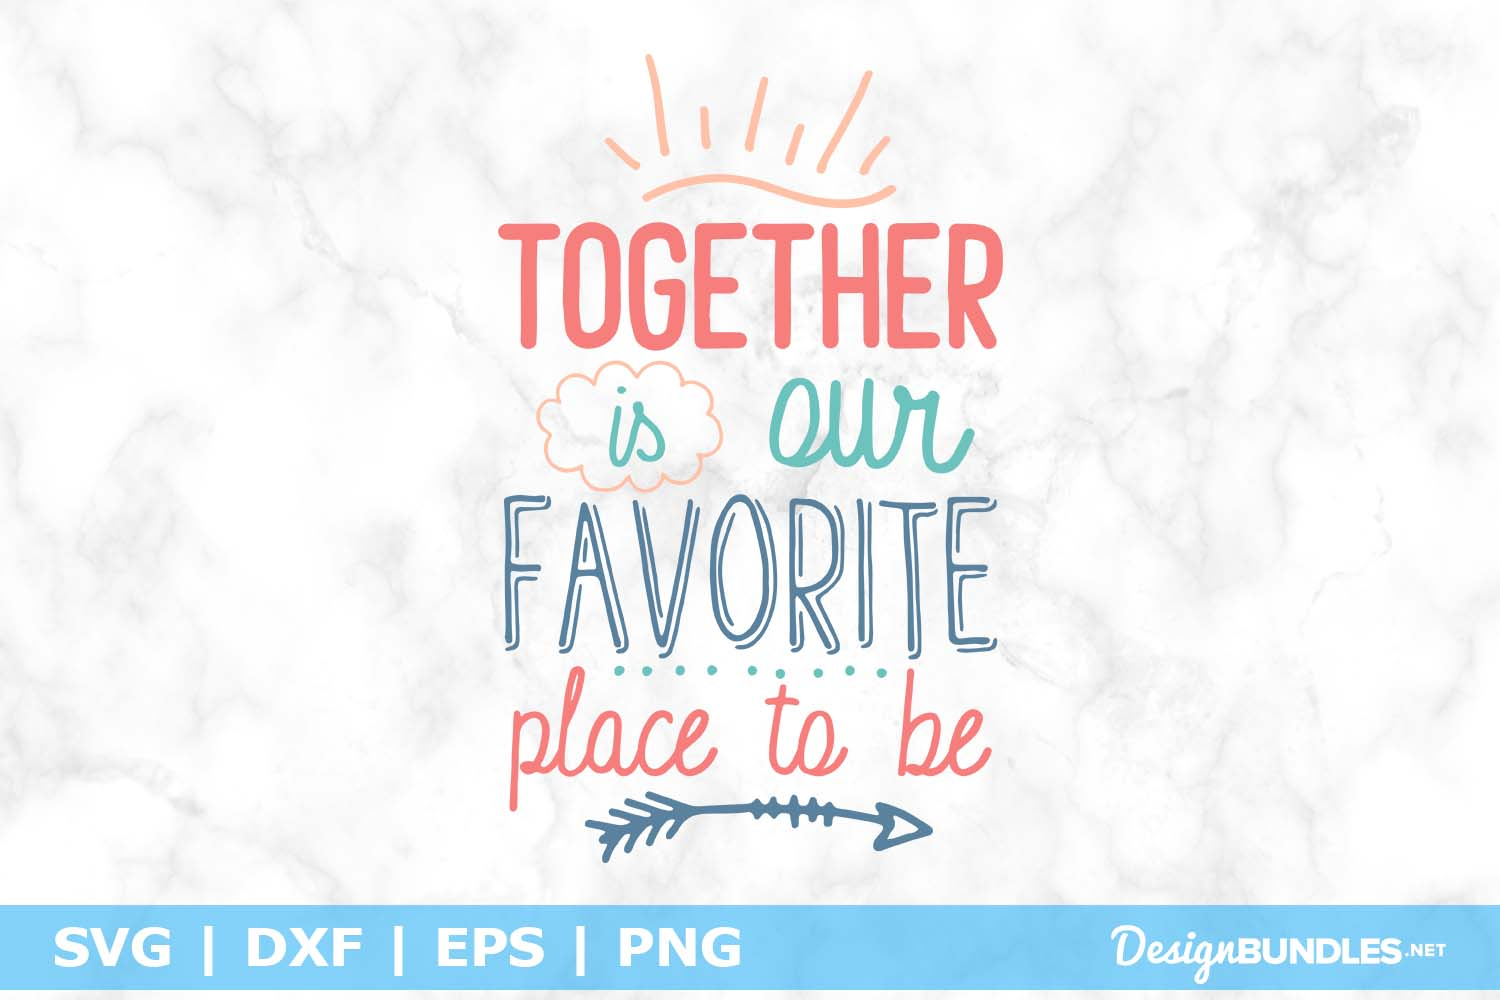 Together Is Our Favorite Place to Be SVG File example image 1